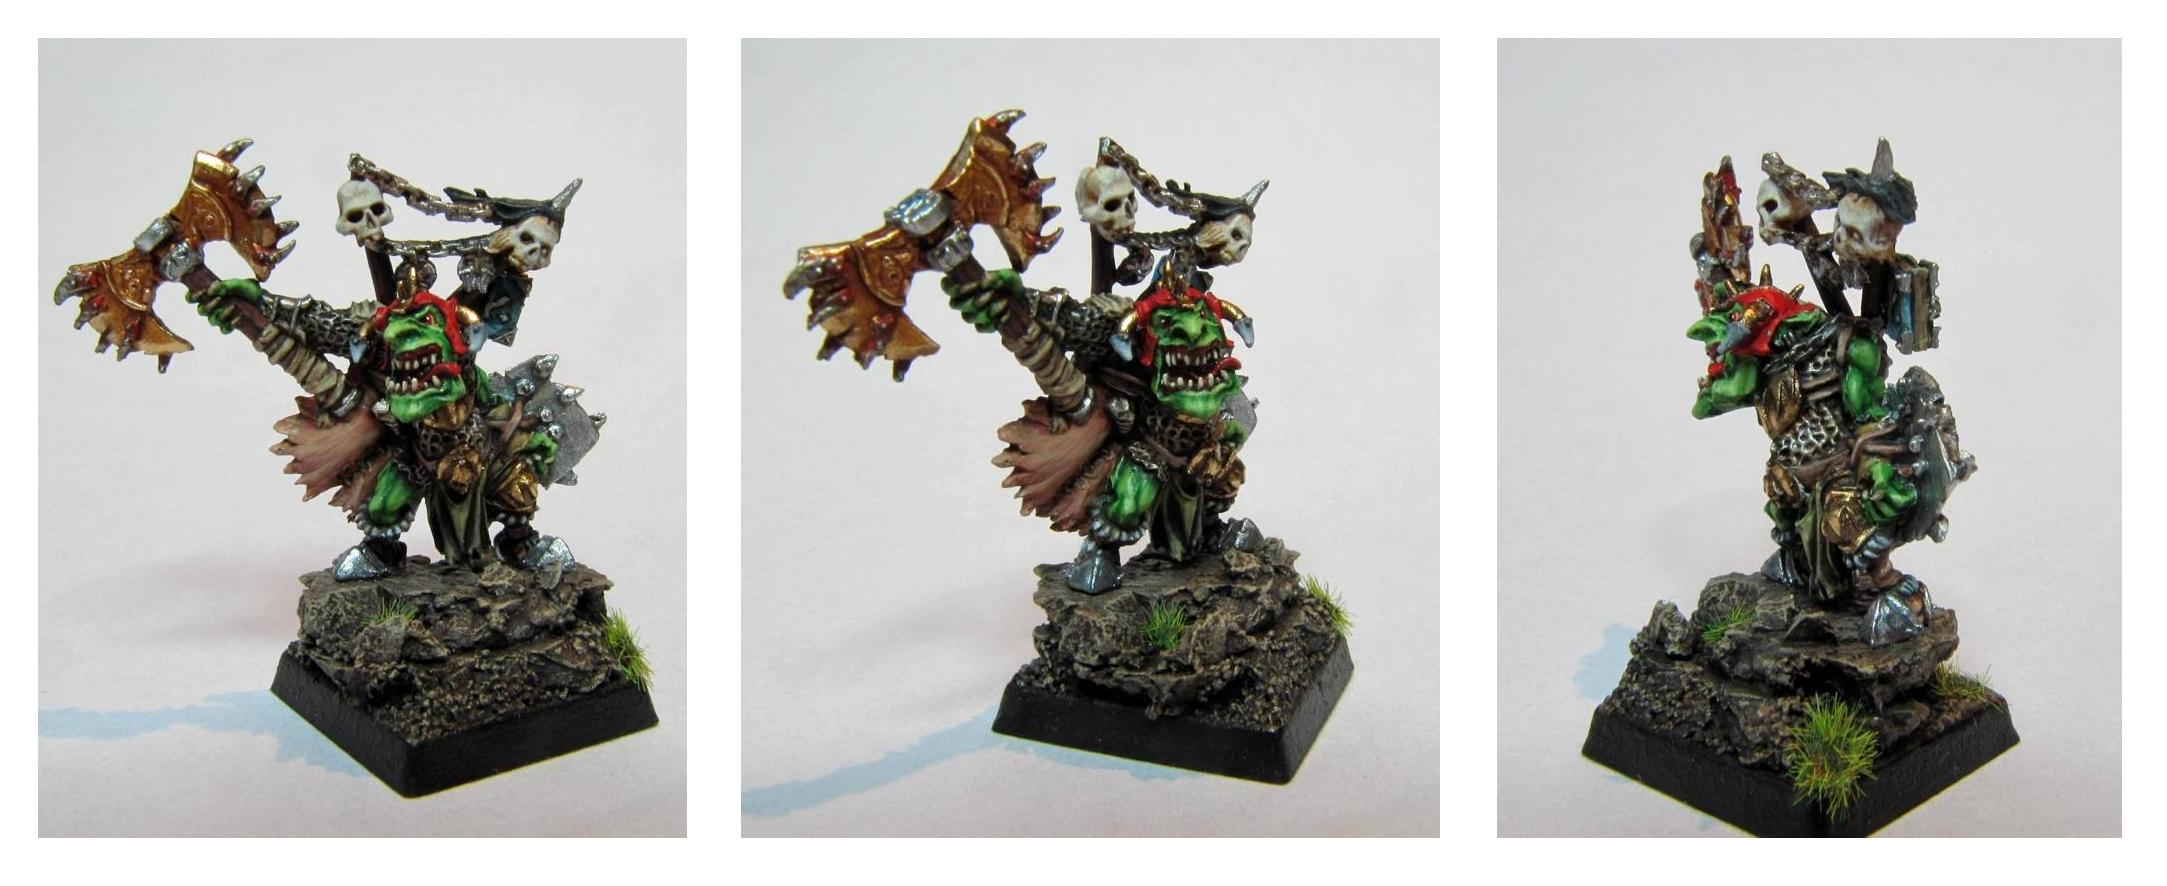 Avatars Of War, Goblins, Hero, Warhammer Fantasy